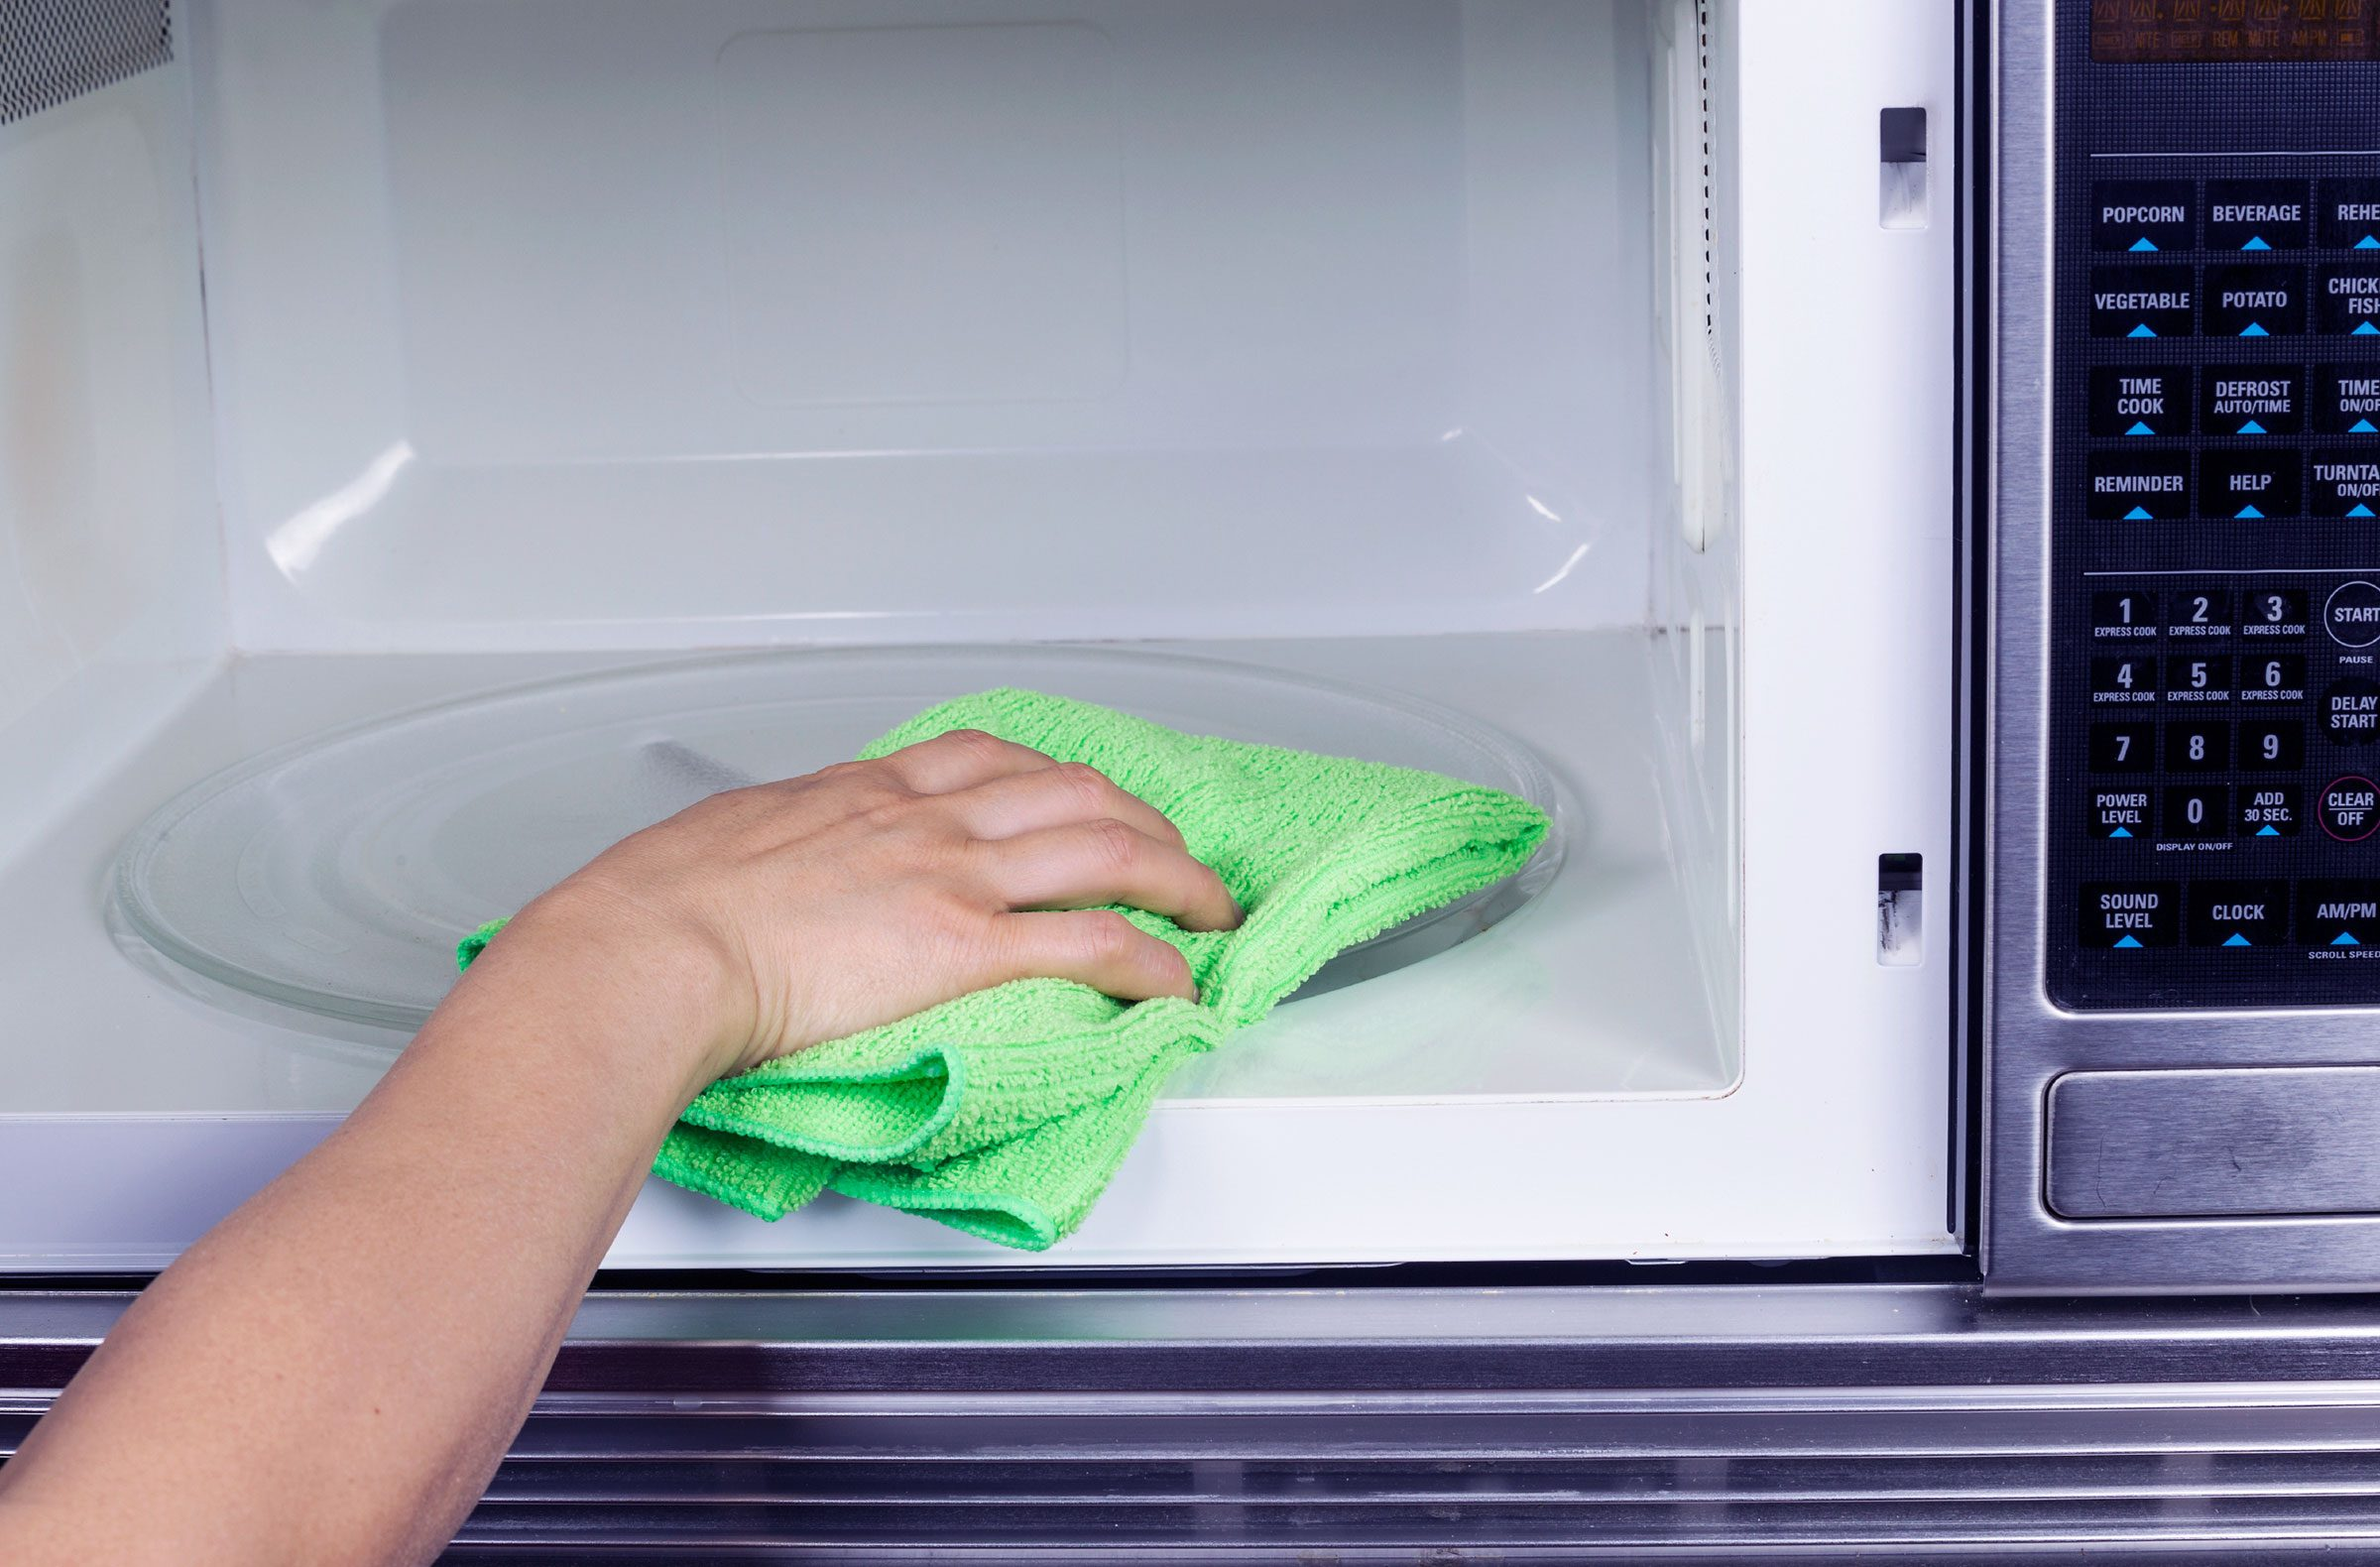 To clean your microwave oven, microwave a cup of water with some baking soda in it until it's boiling.